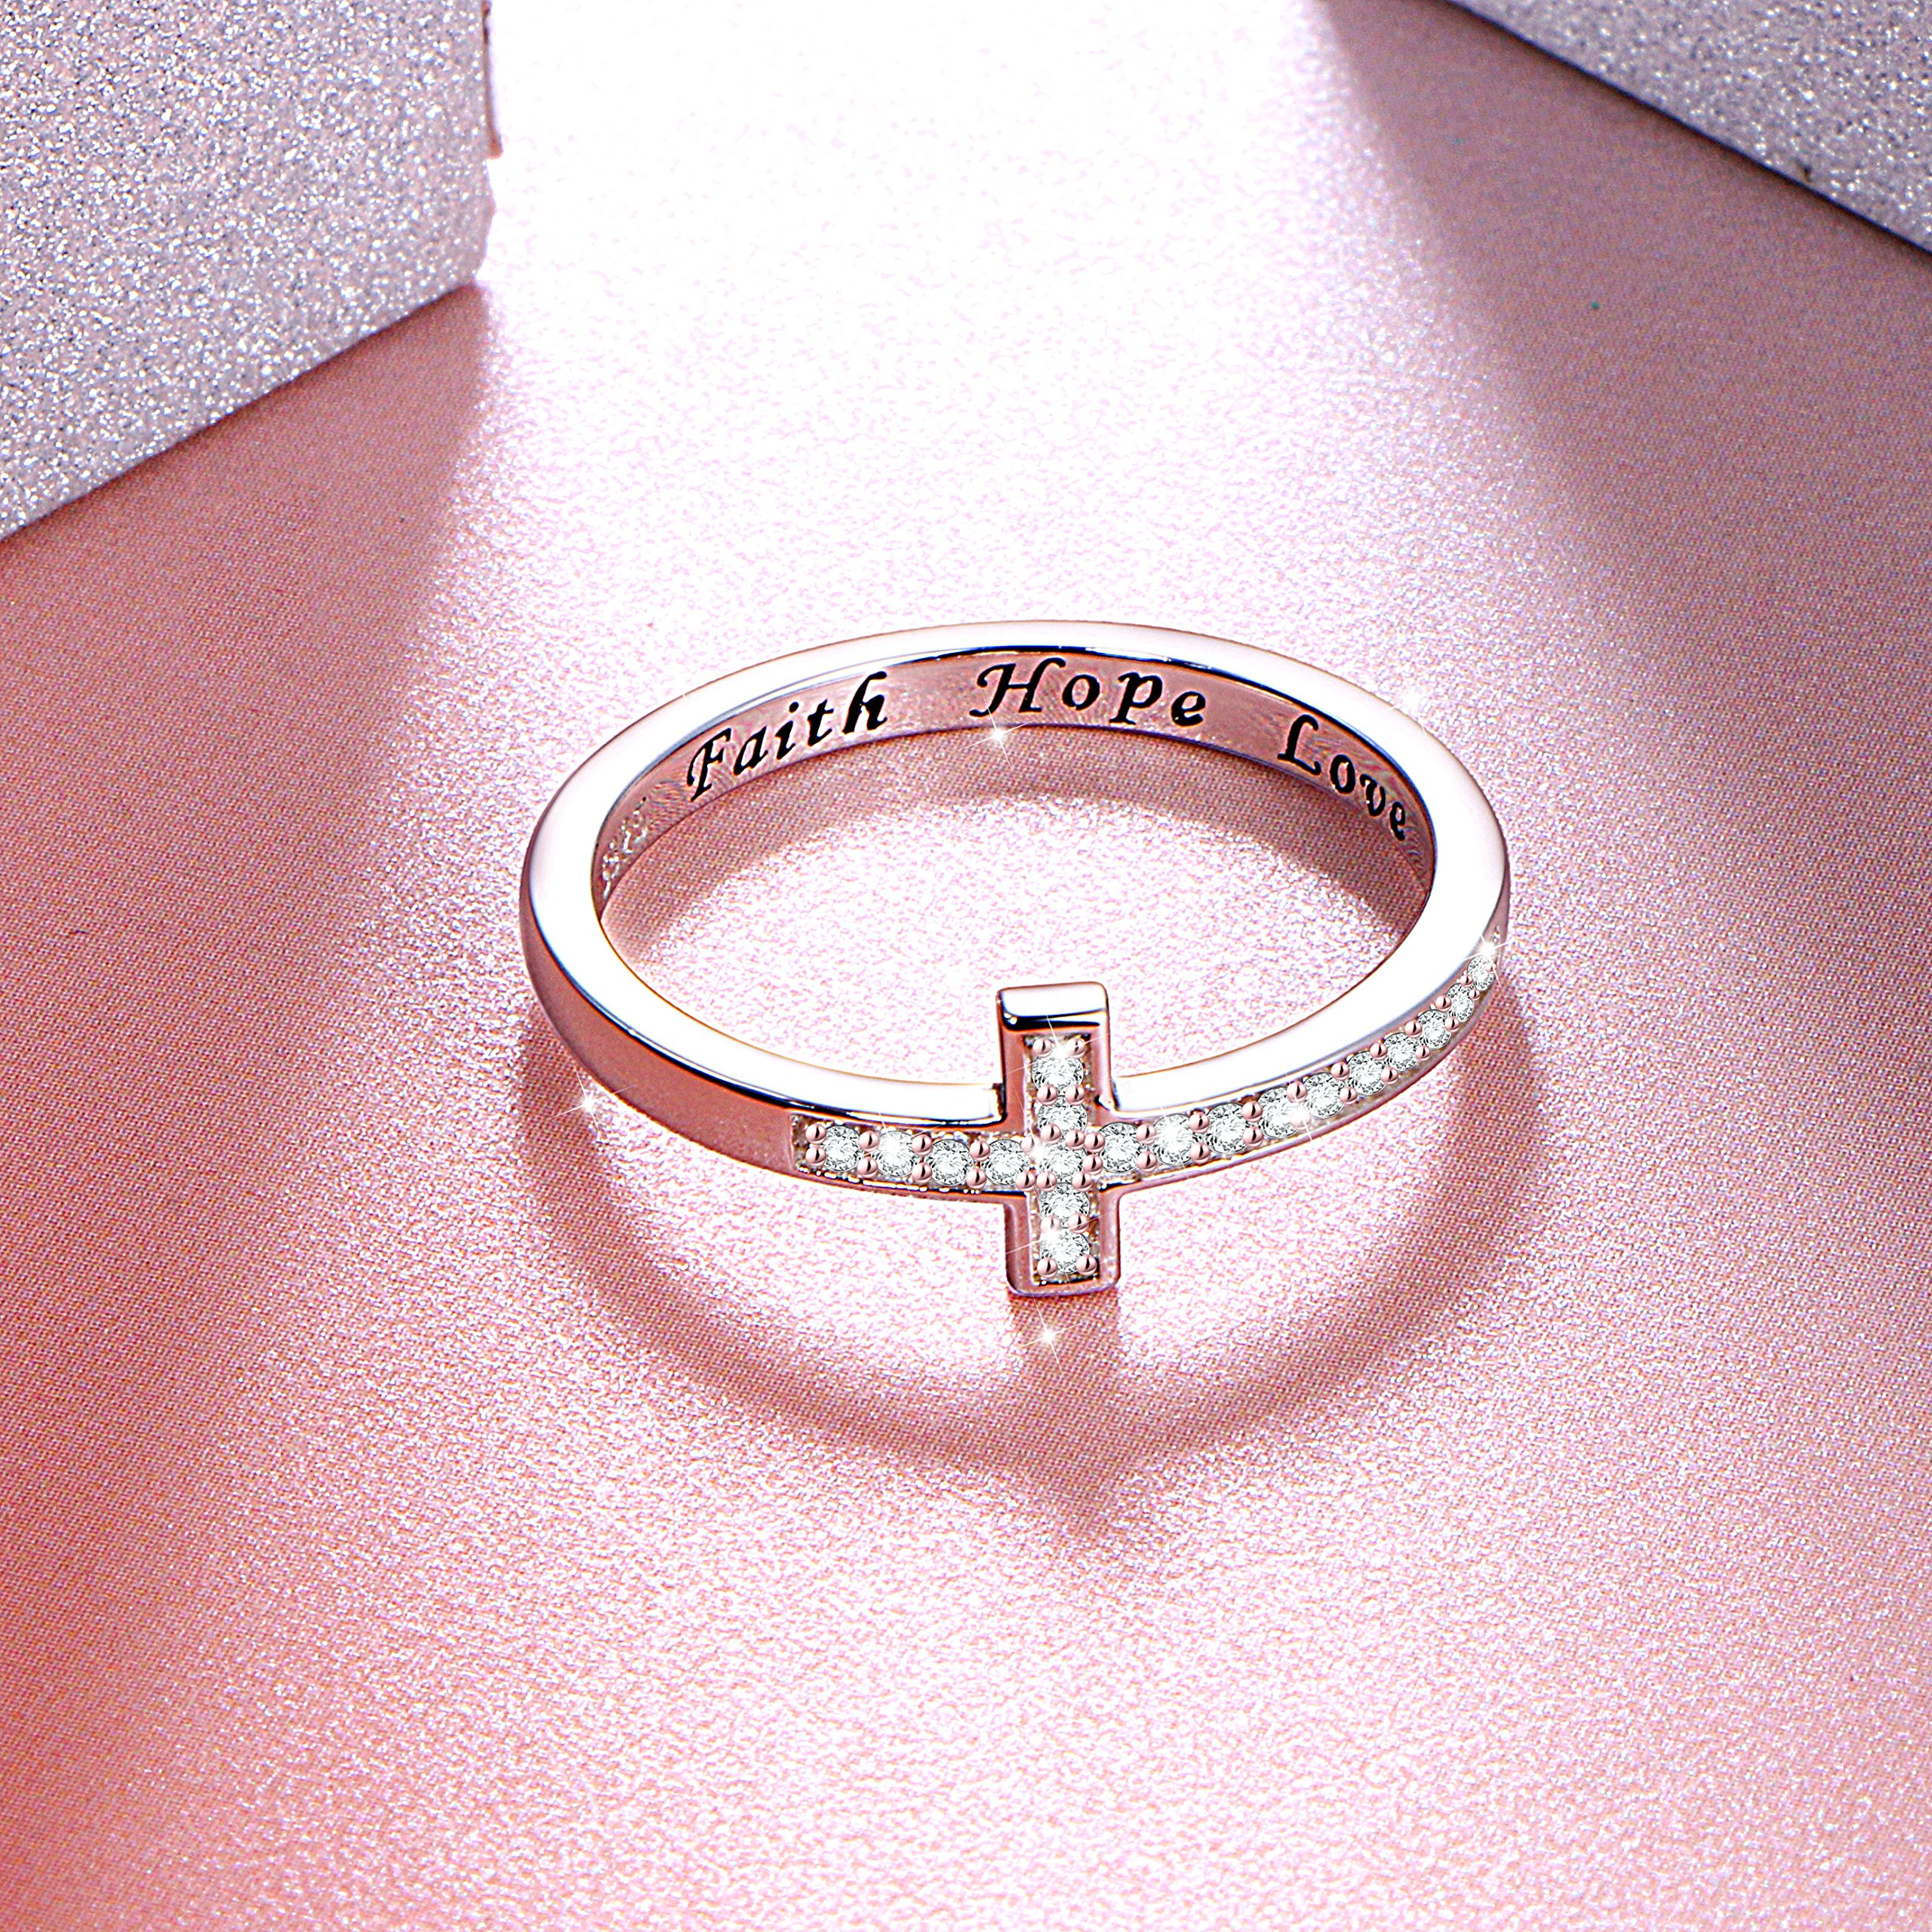 DAOCHONG Inspirational Jewelry Sterling Silver Engraved Faith Hope Love Sideway Cross Ring, Size 6 7 8 (8) by DAOCHONG (Image #4)